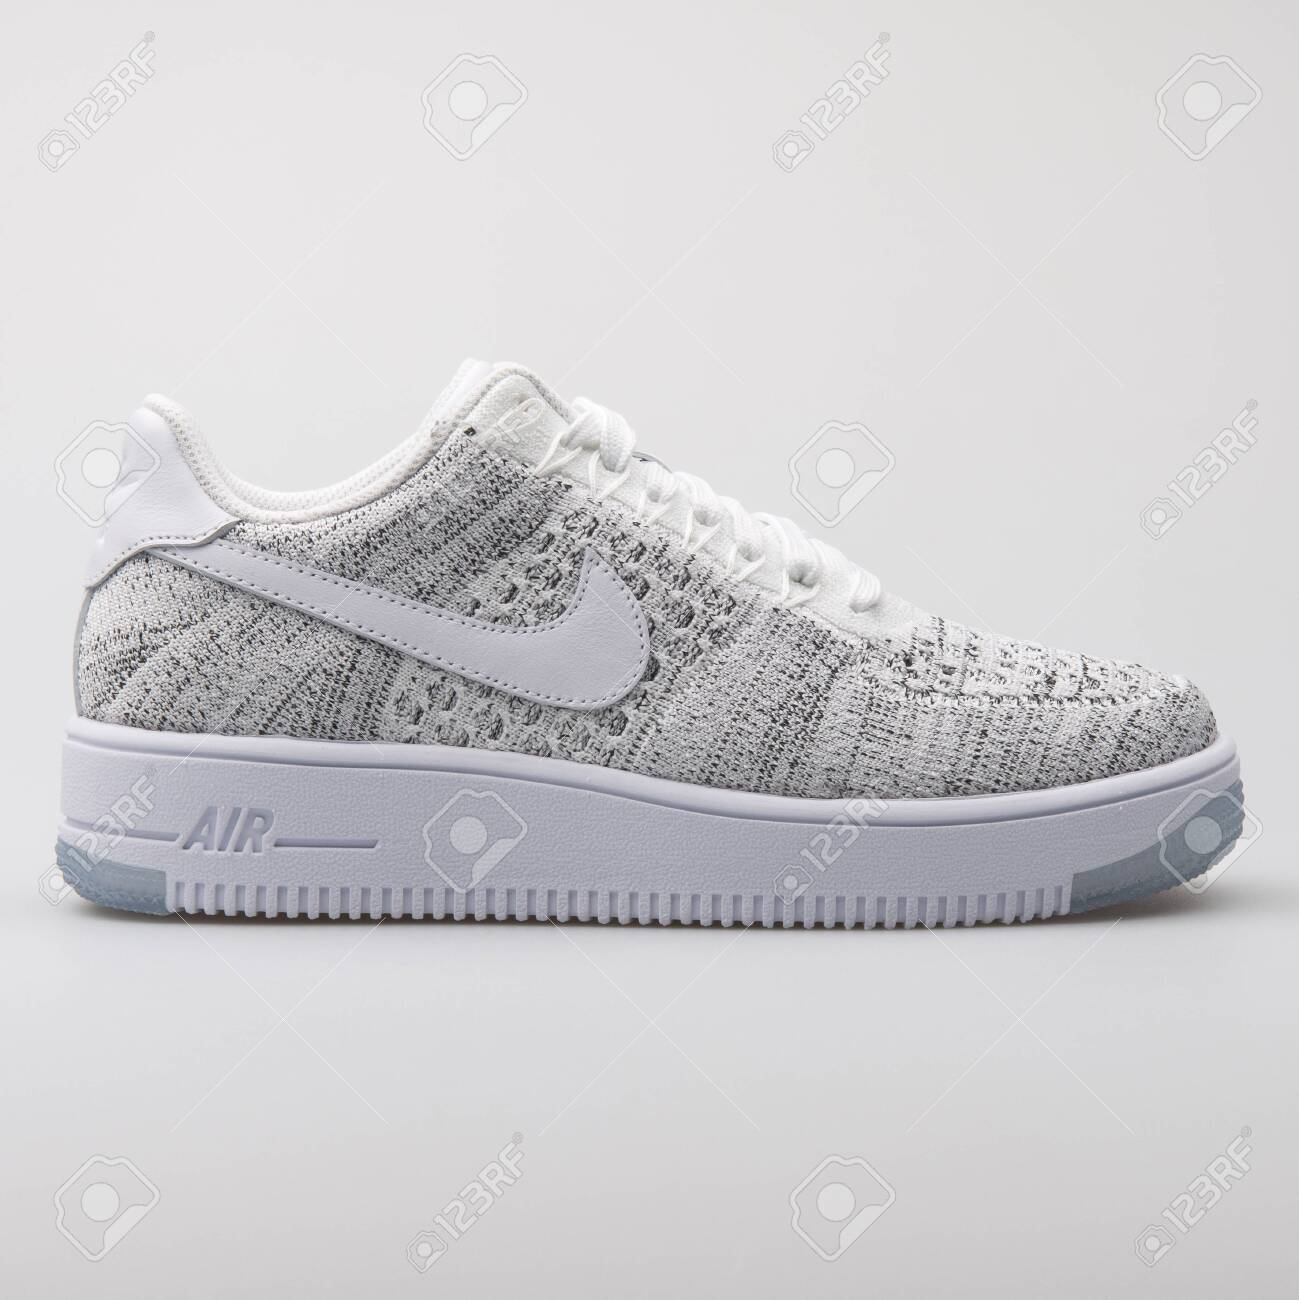 sale retailer 70955 f975f VIENNA, AUSTRIA - AUGUST 7, 2017: Nike Air Force 1 Flyknit Low..